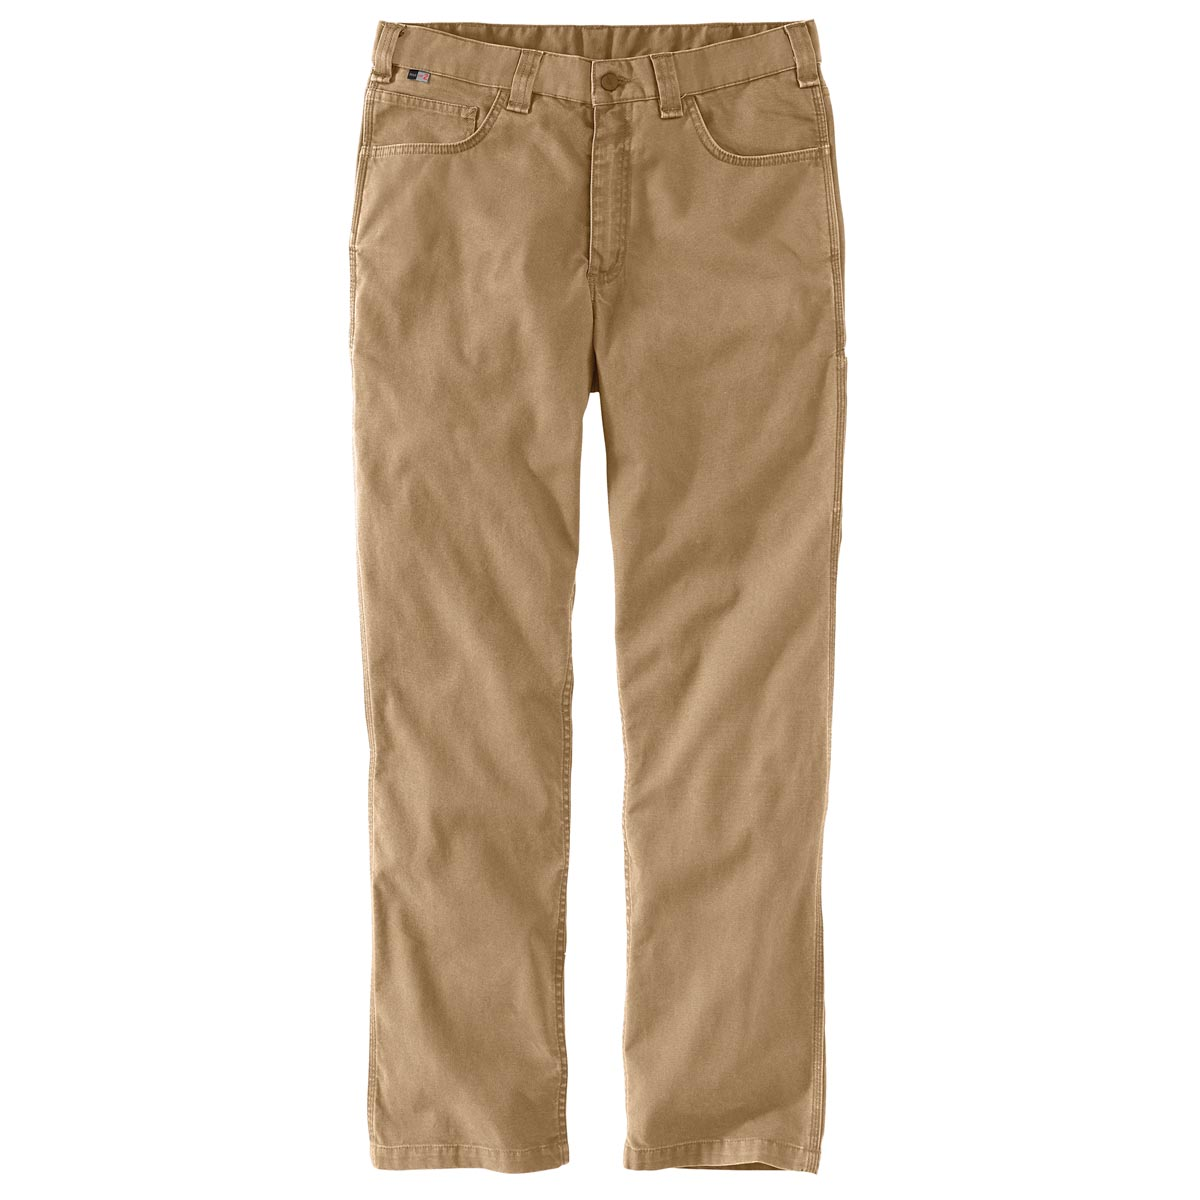 NEW Carhartt Men/'s Pants Fire Resistant Jeans Relaxed Fit Work Pants Size 44X32